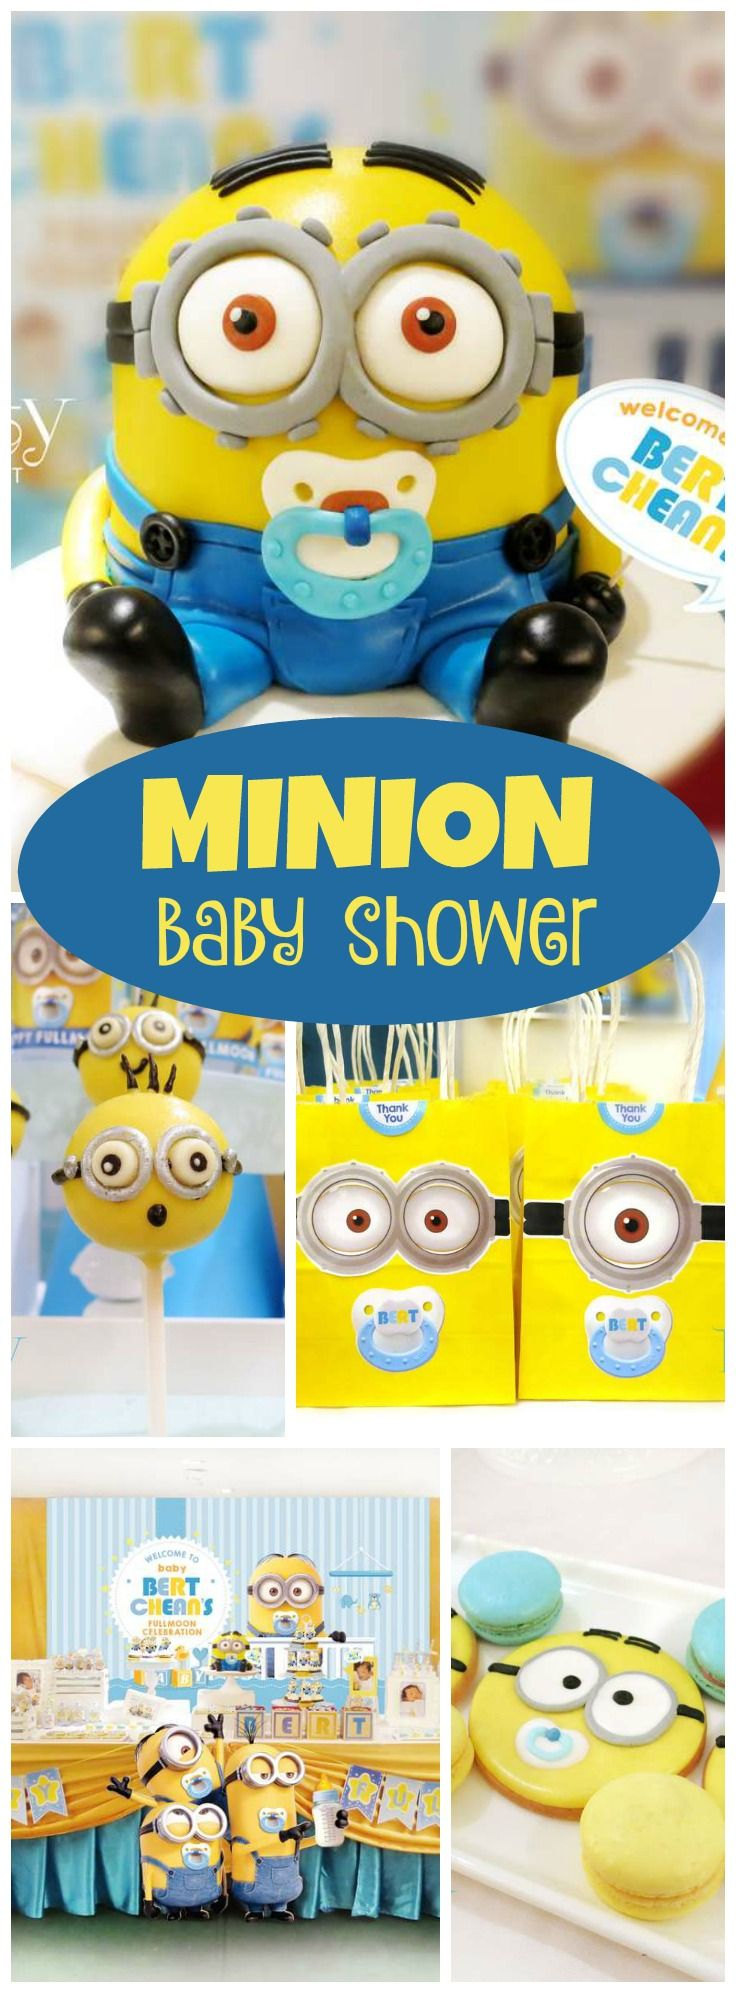 Custom Minion Baby Shower Invite | Baby Shower Invitations | Pinterest | Minion  Baby Shower, Minion Baby And Babies